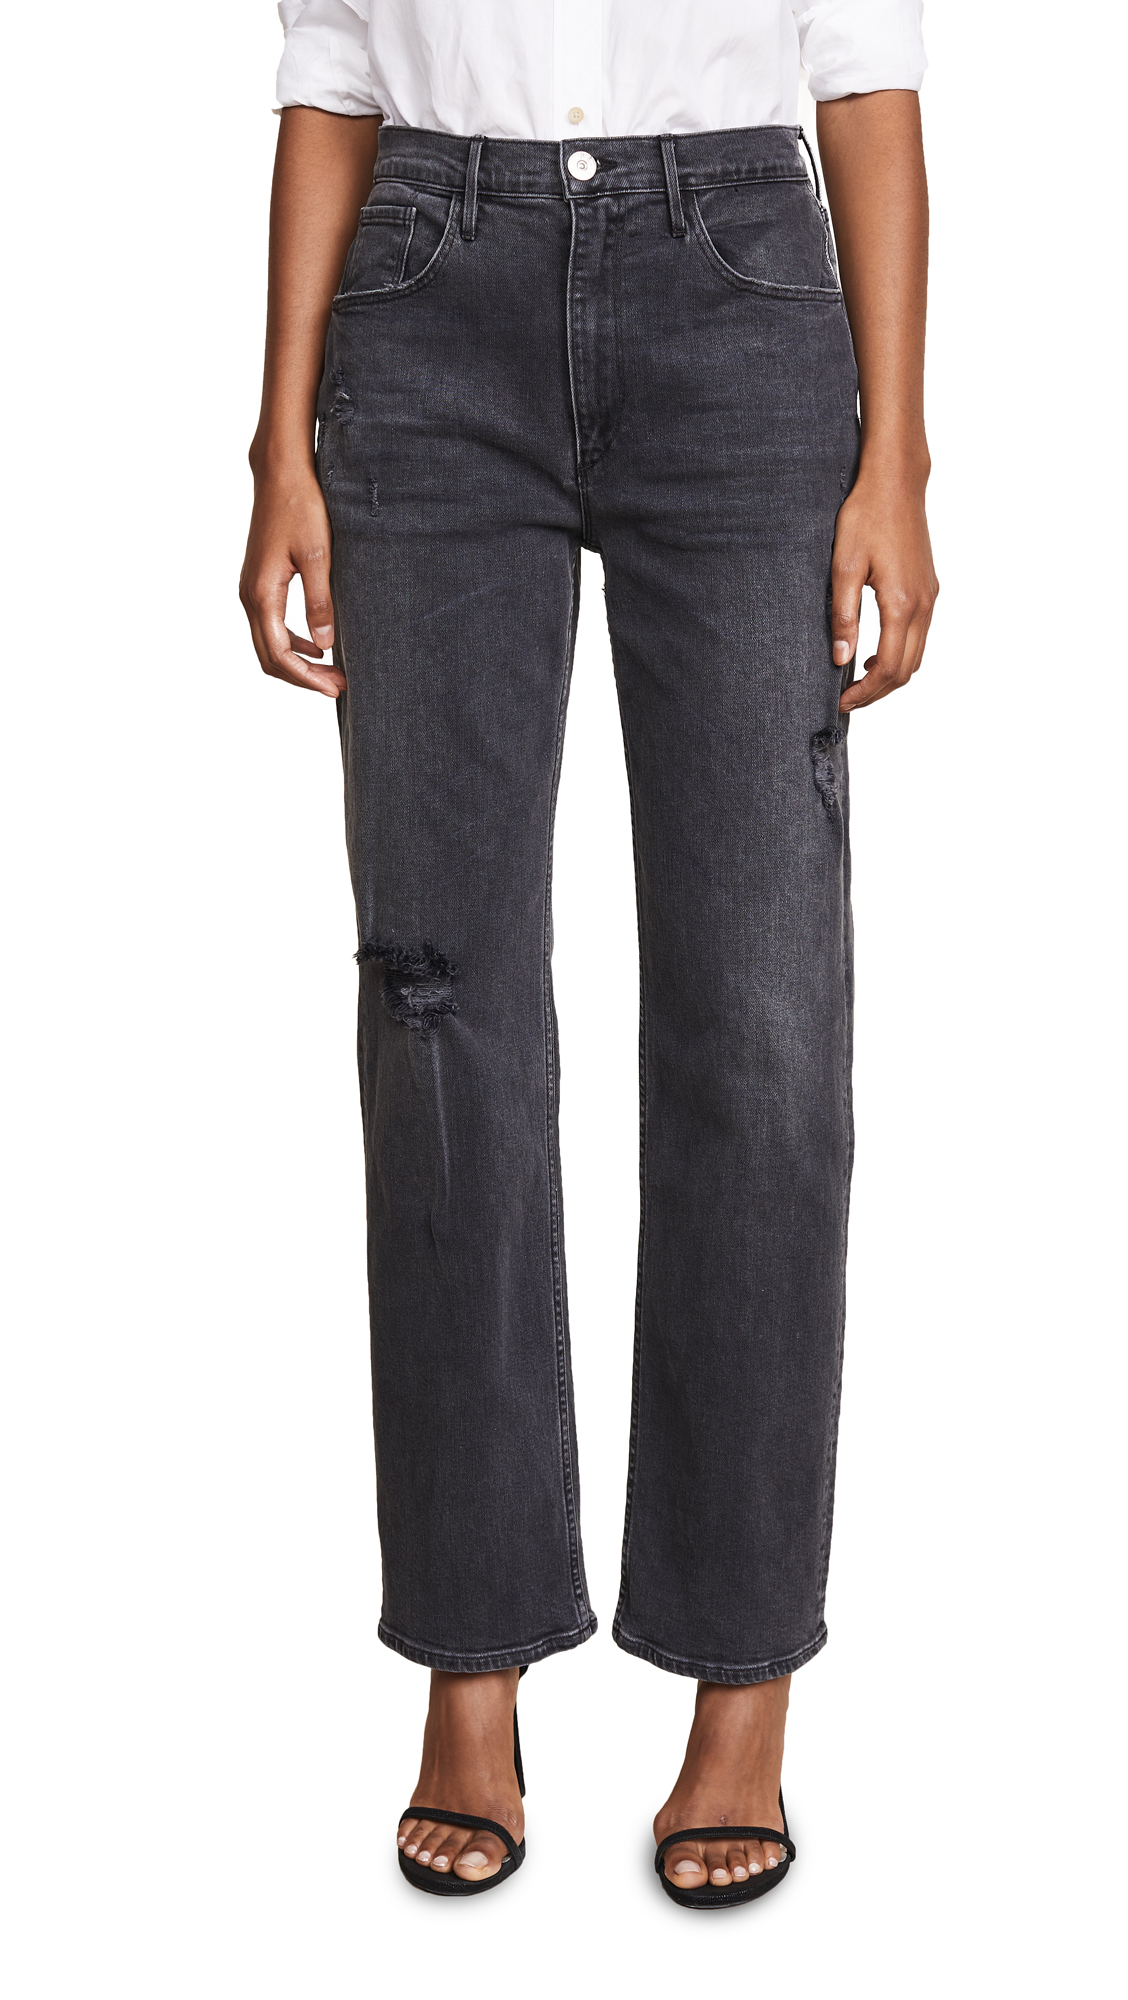 3x1 Addie Loose Fit Jeans - Tori